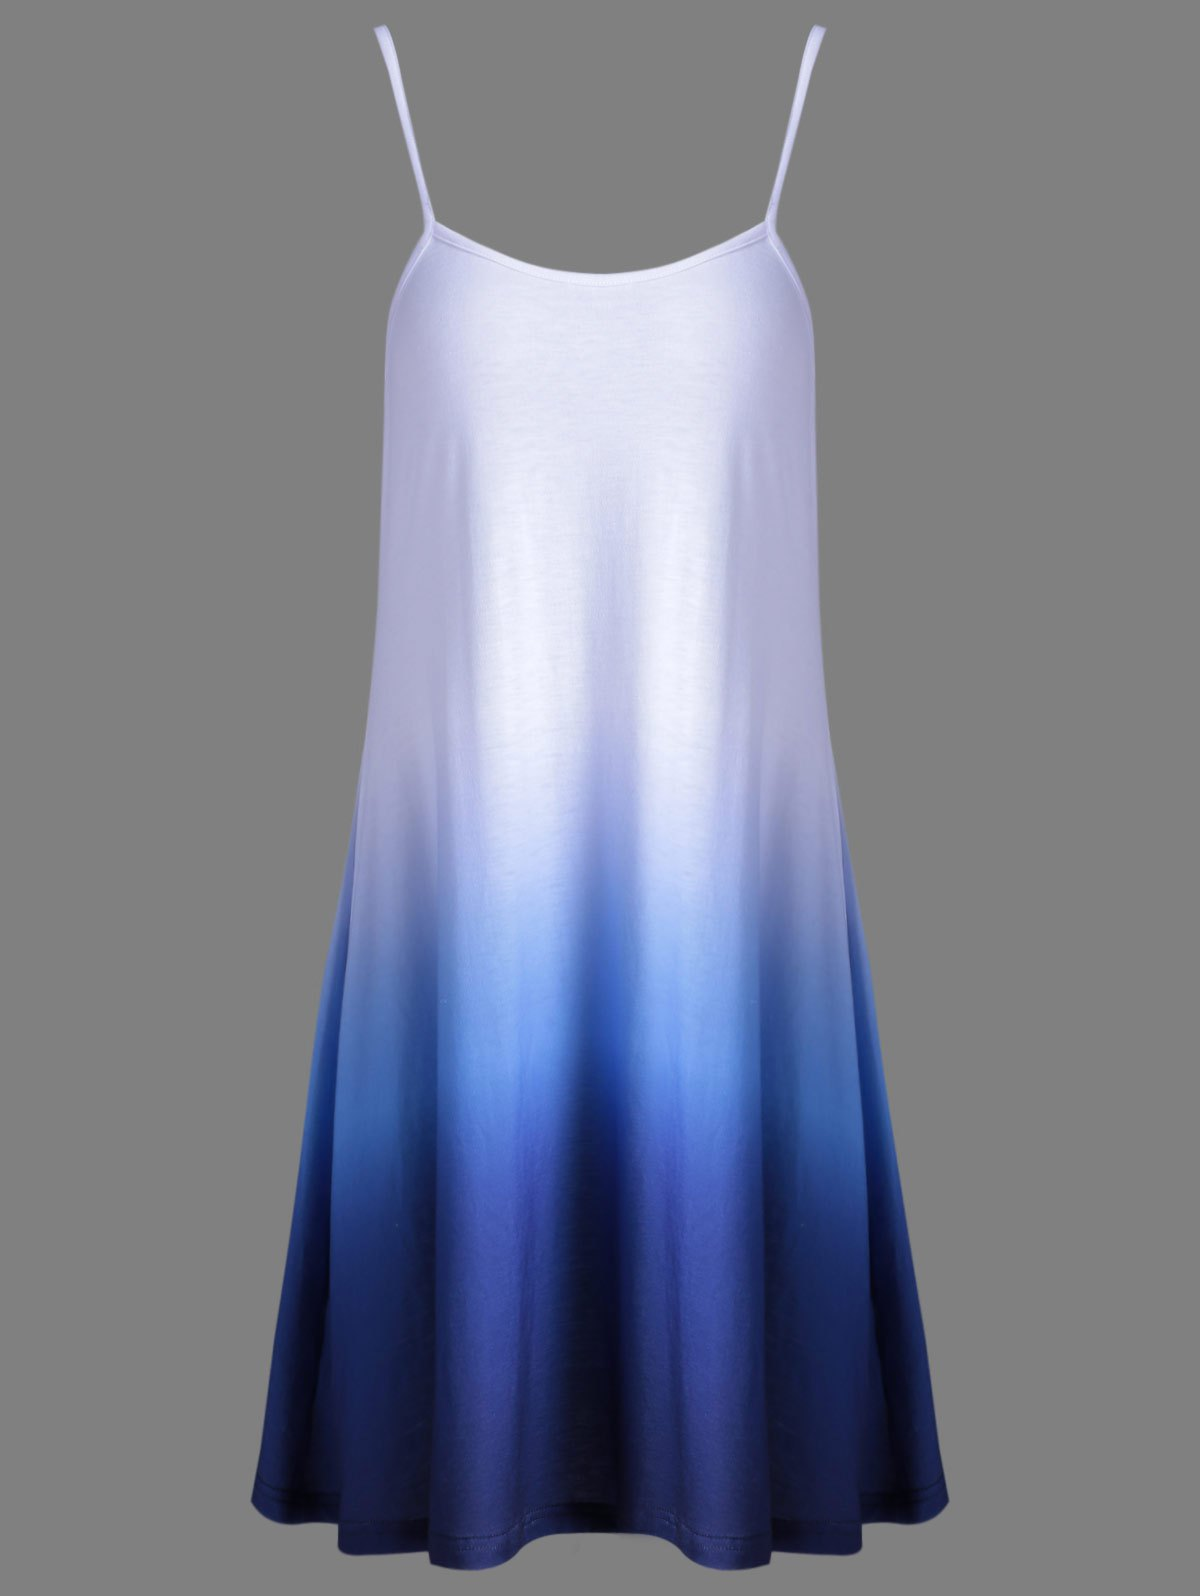 Fashion Ombre Cami Dress For Women - BLUE L